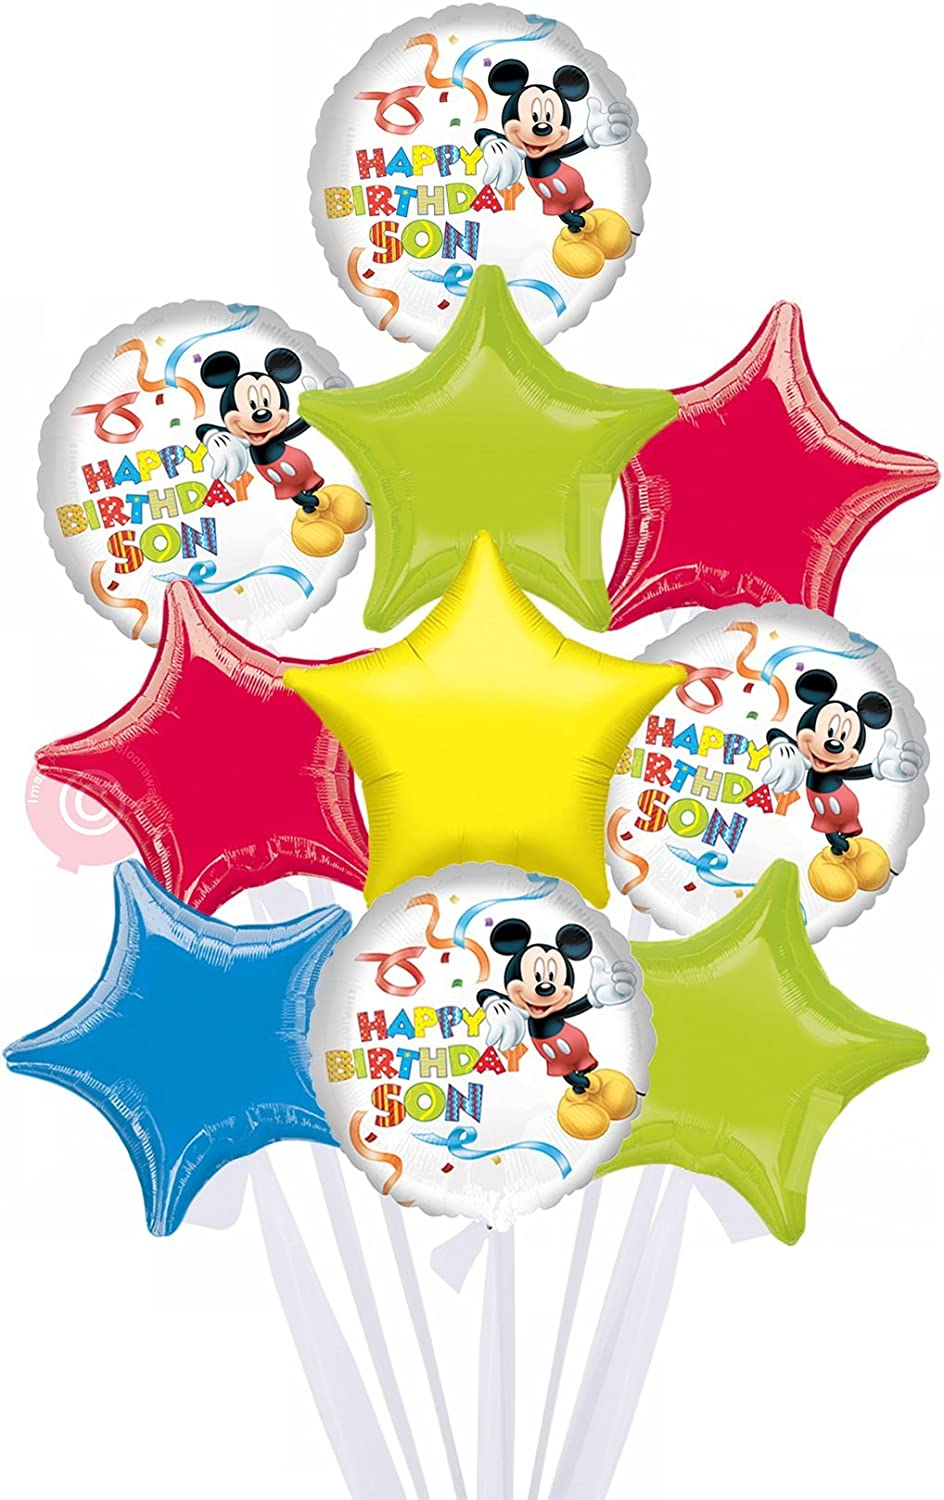 Mickey Happy Birthday Son  Inflated Birthday Helium Balloon Delivered in a Box  Biggest Bouquet  10 Balloons  Bloonaway